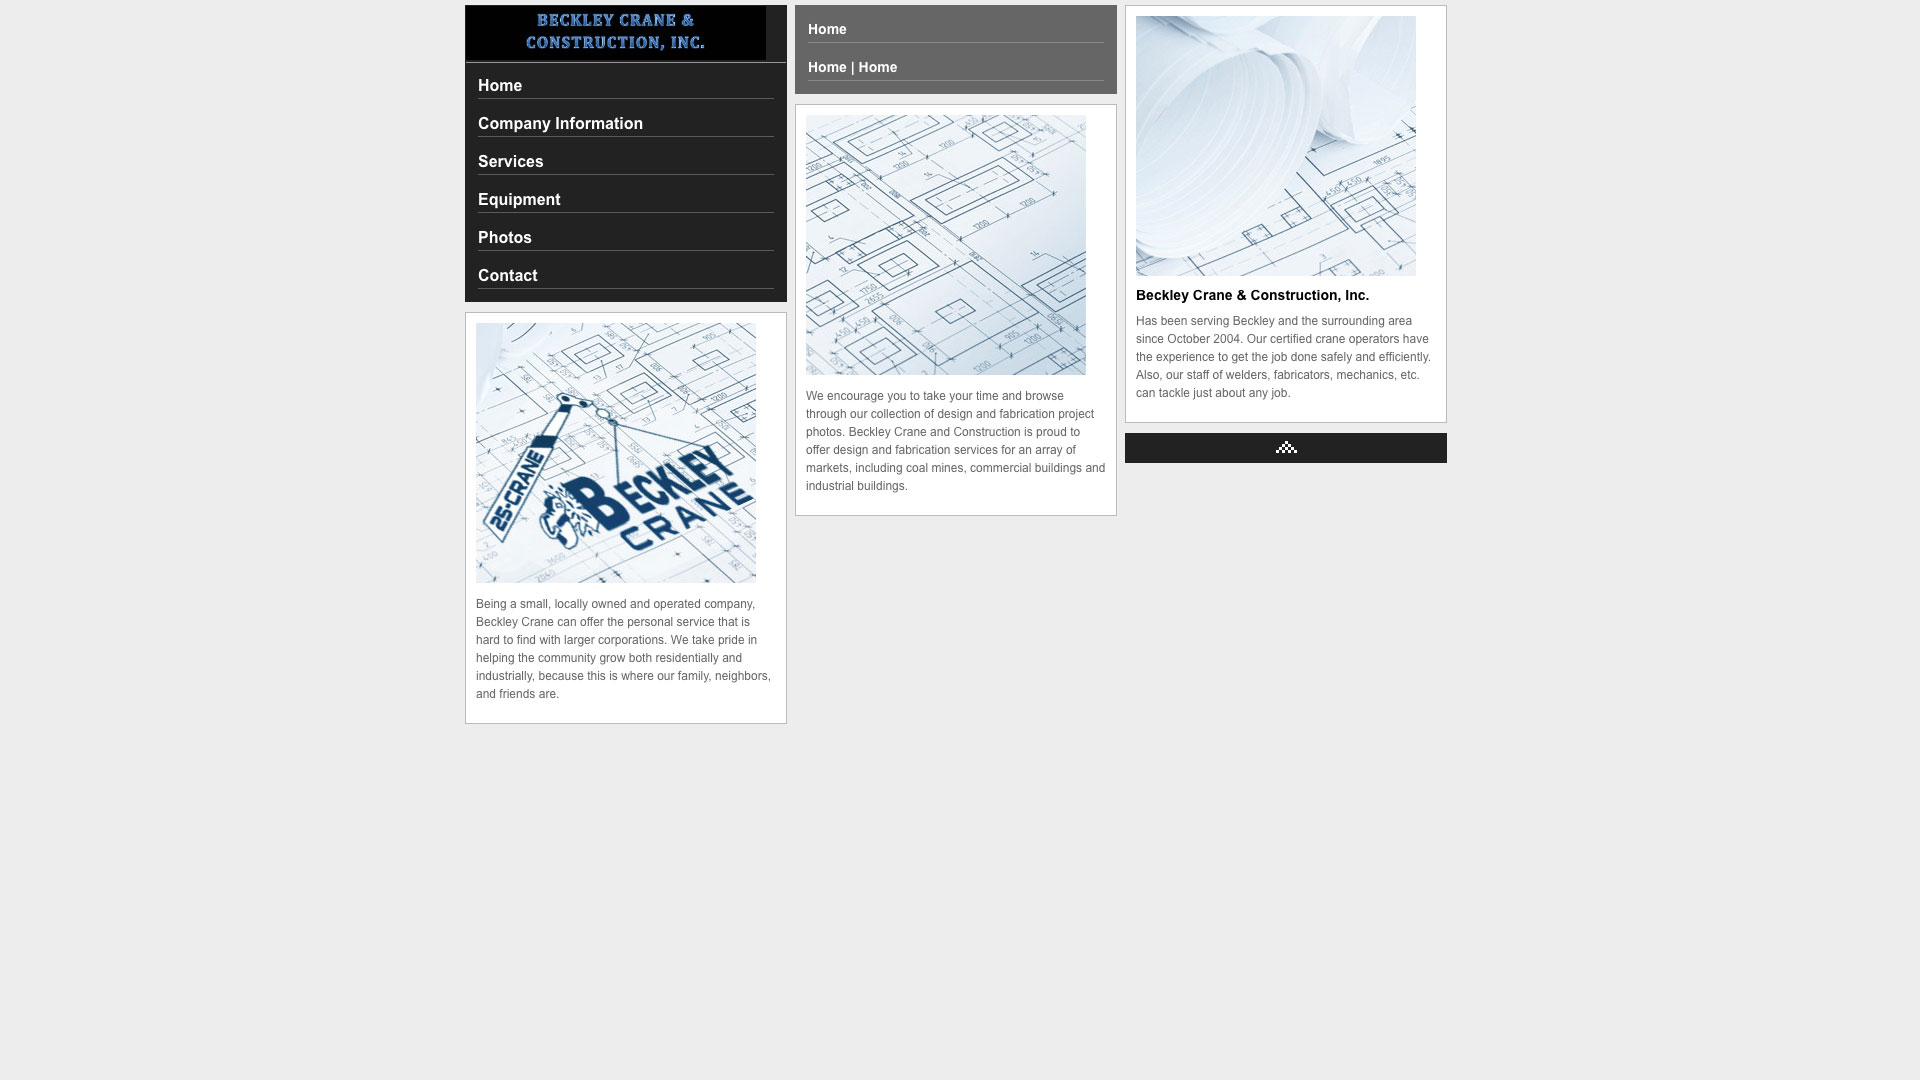 Beckley Crane & Construction Home Page Website before using Cucumber & Co WV Web Design